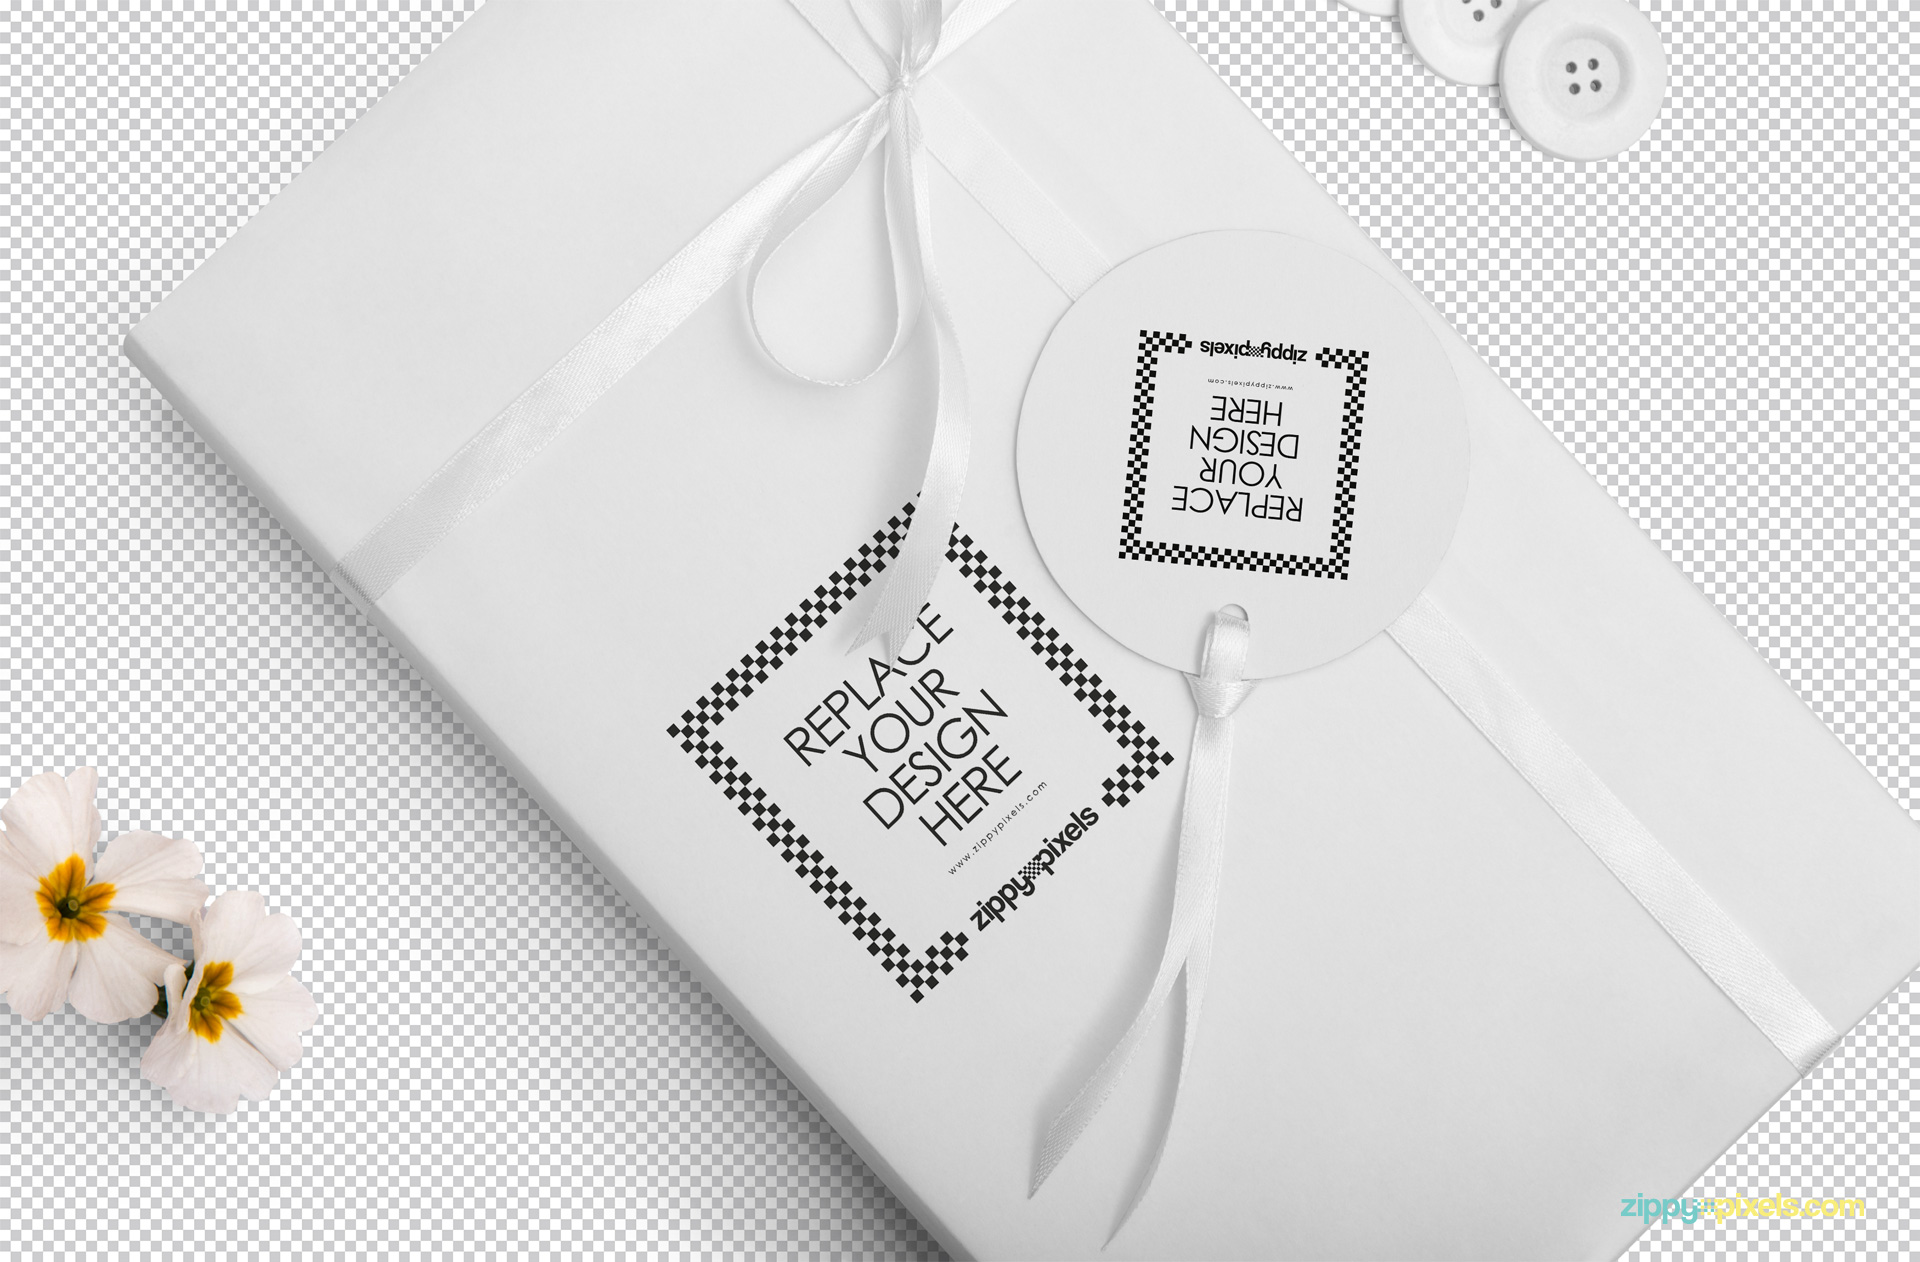 Use Photoshop to add your designs on this wrapping paper and tag mockup.